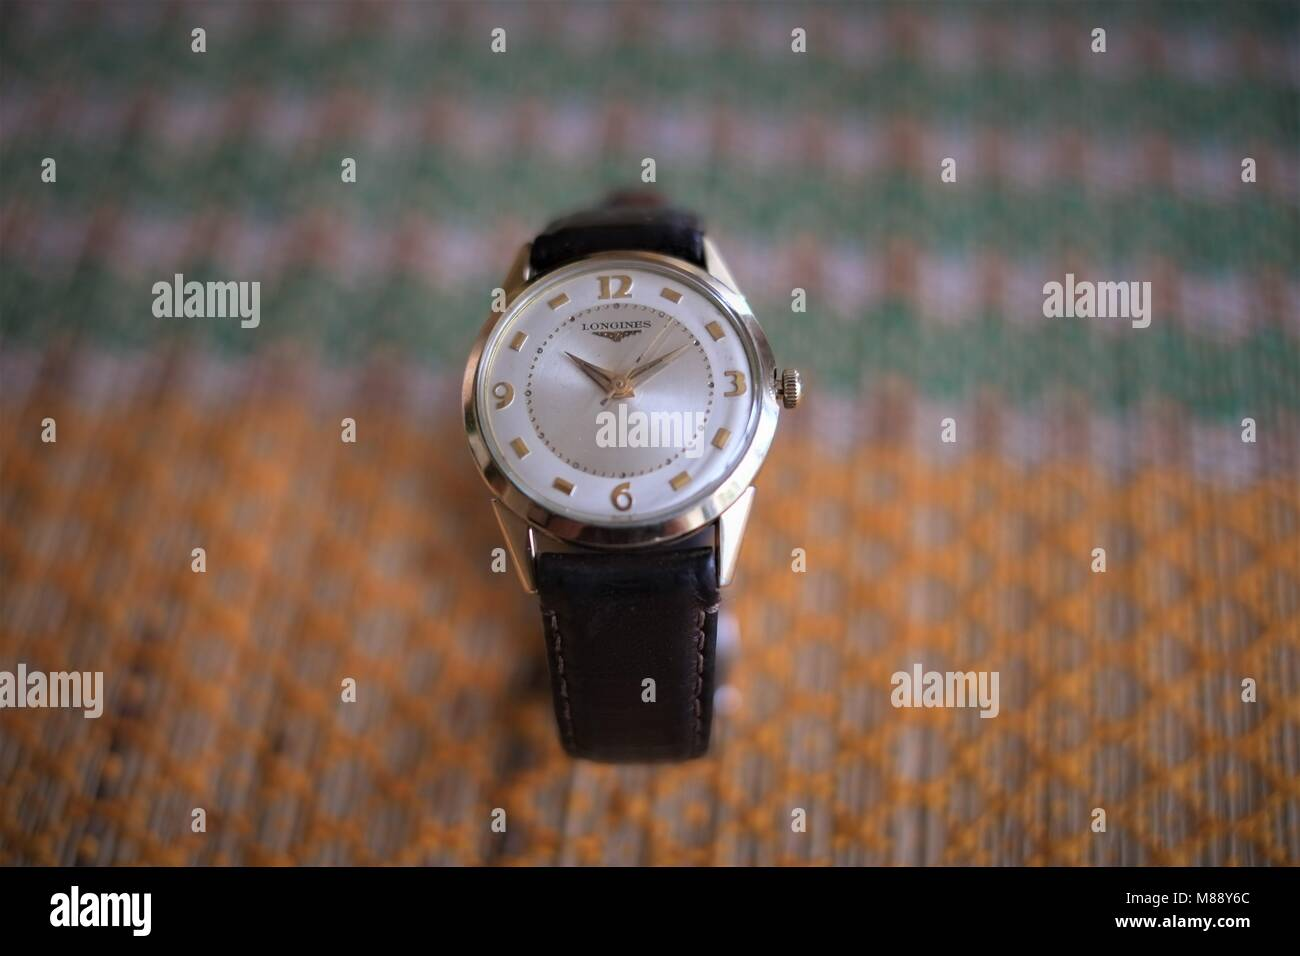 Close-up of vintage Longines men's wristwatch - Stock Image